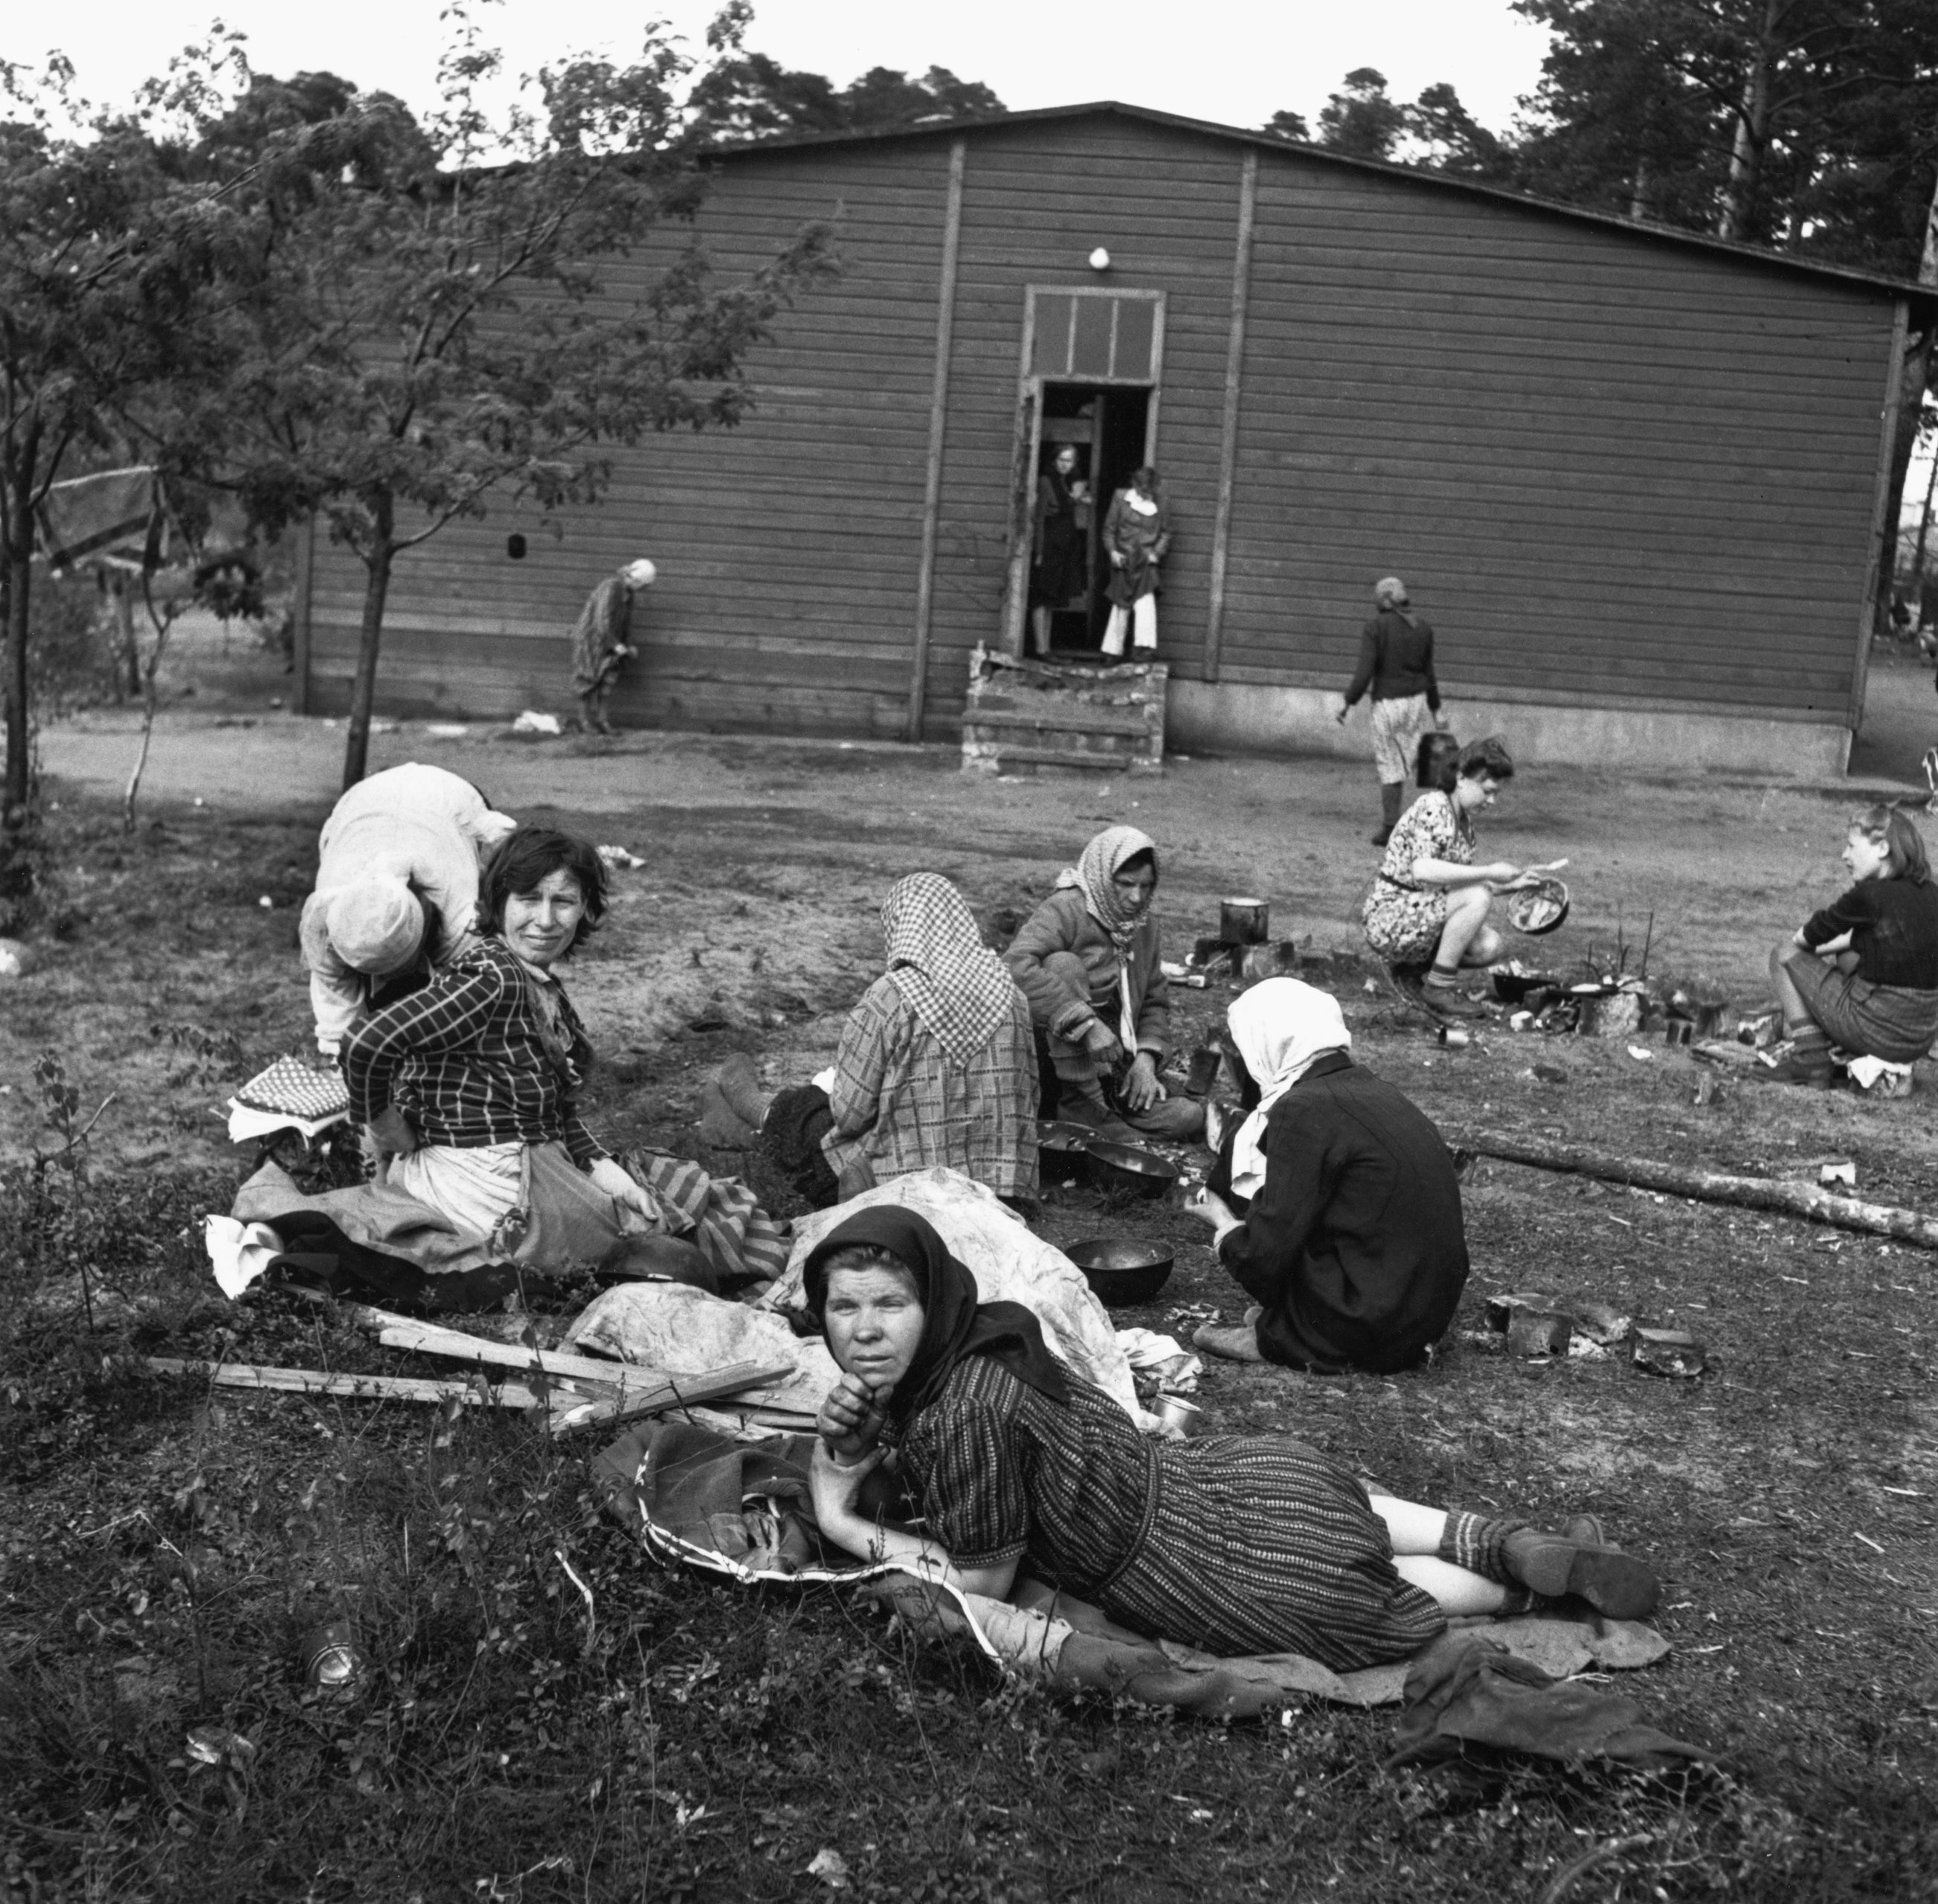 A group of women at the liberated Bergen-Belsen concentration camp in Lower Saxony during World War II, 1945.